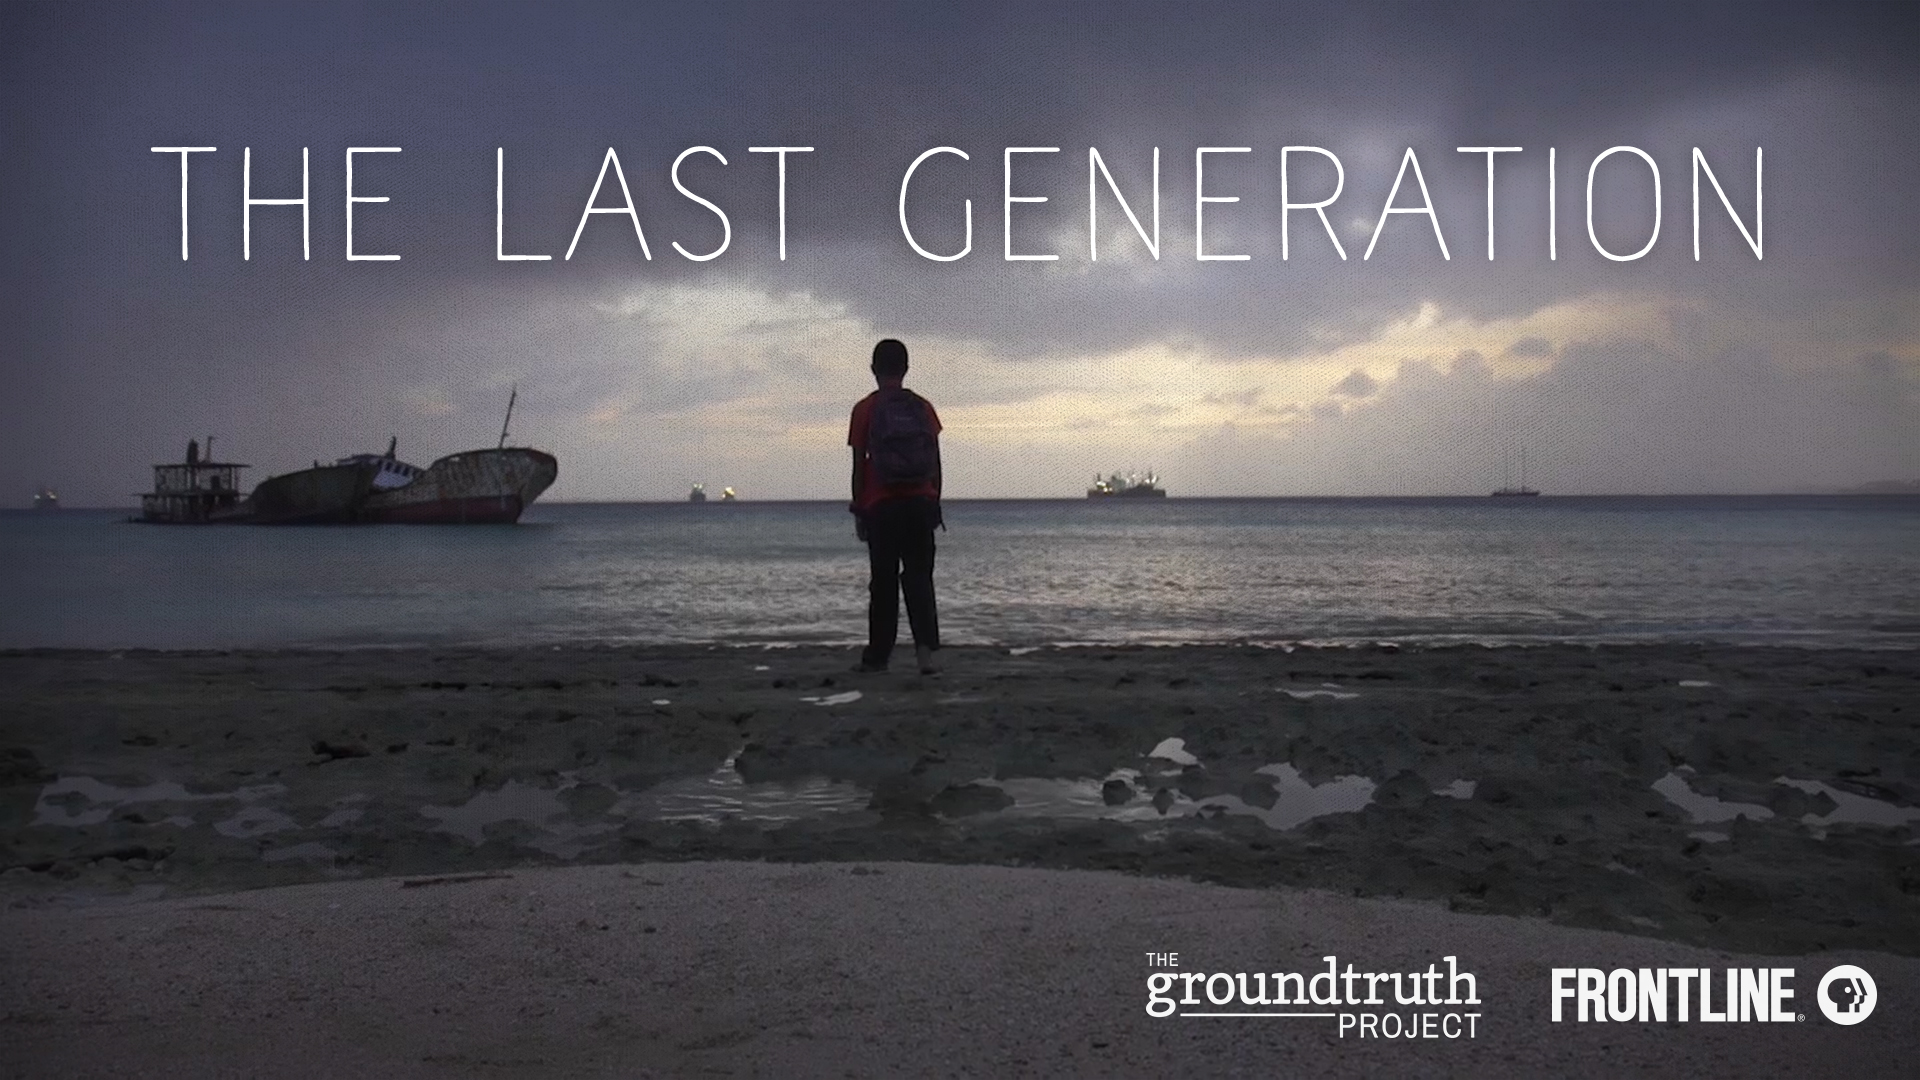 11_Wallpaper_The Last Generation_FRONTLINE_The GroundTruth Project.jpg